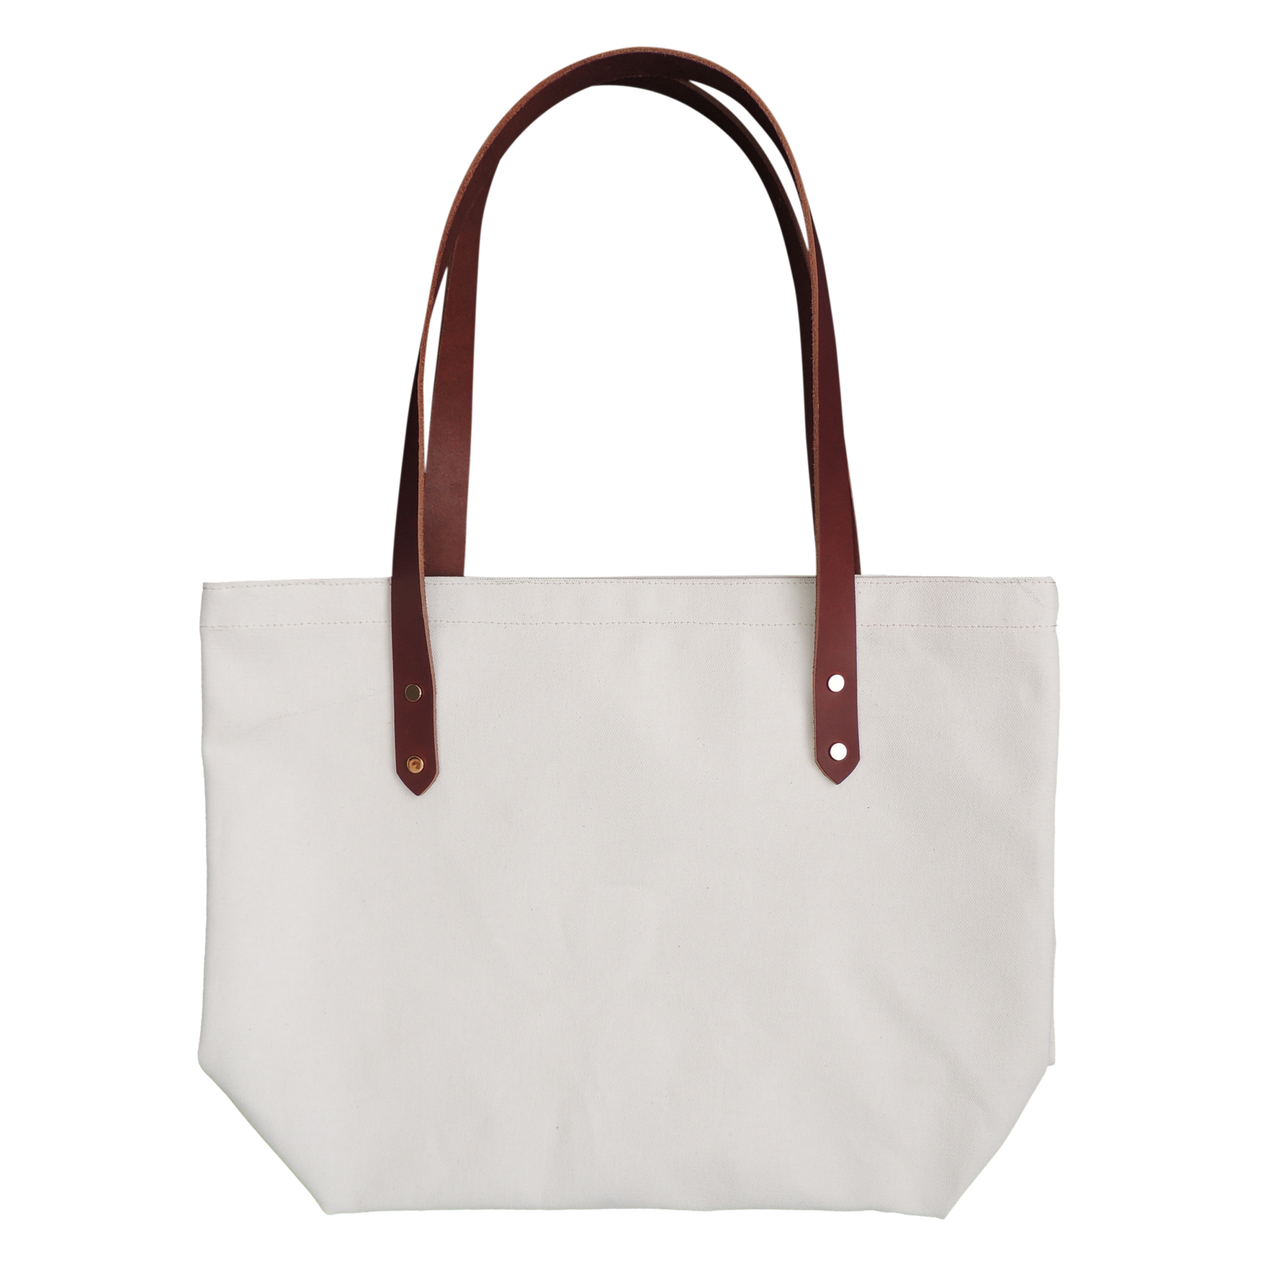 P.I.Y Primed Canvas Market Tote with Leather Straps